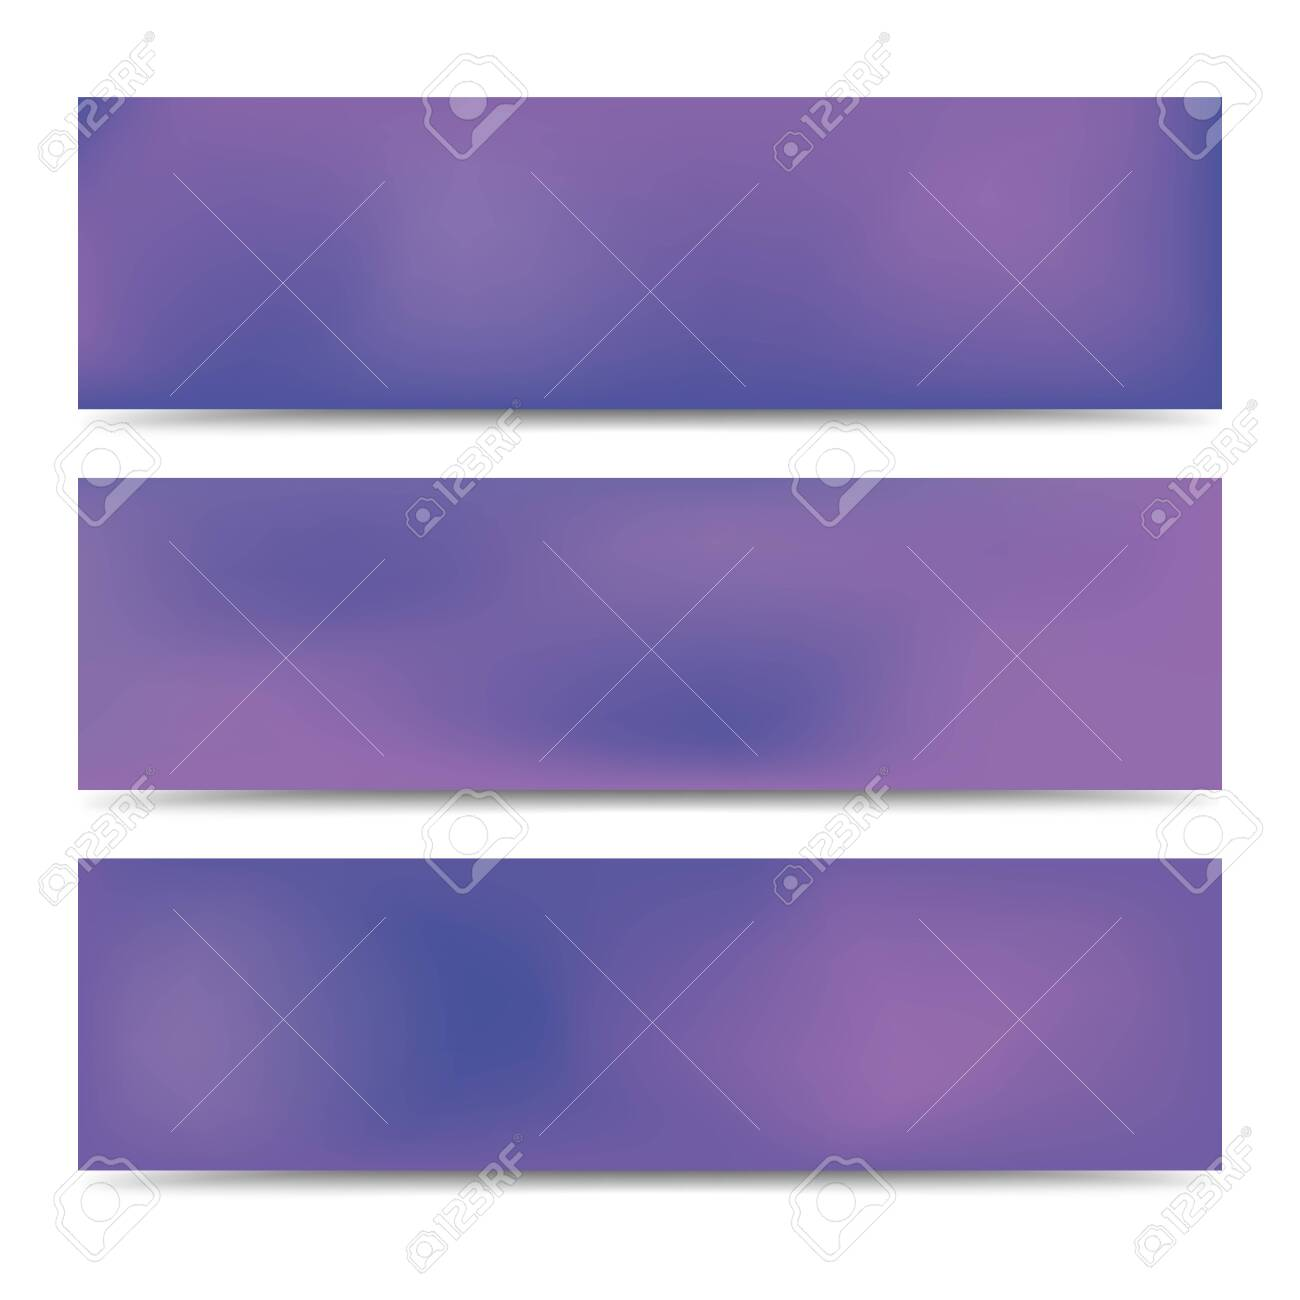 Smooth abstract blurred gradient purple banners set. Abstract Creative multicolored background. Vector illustration - 128855168